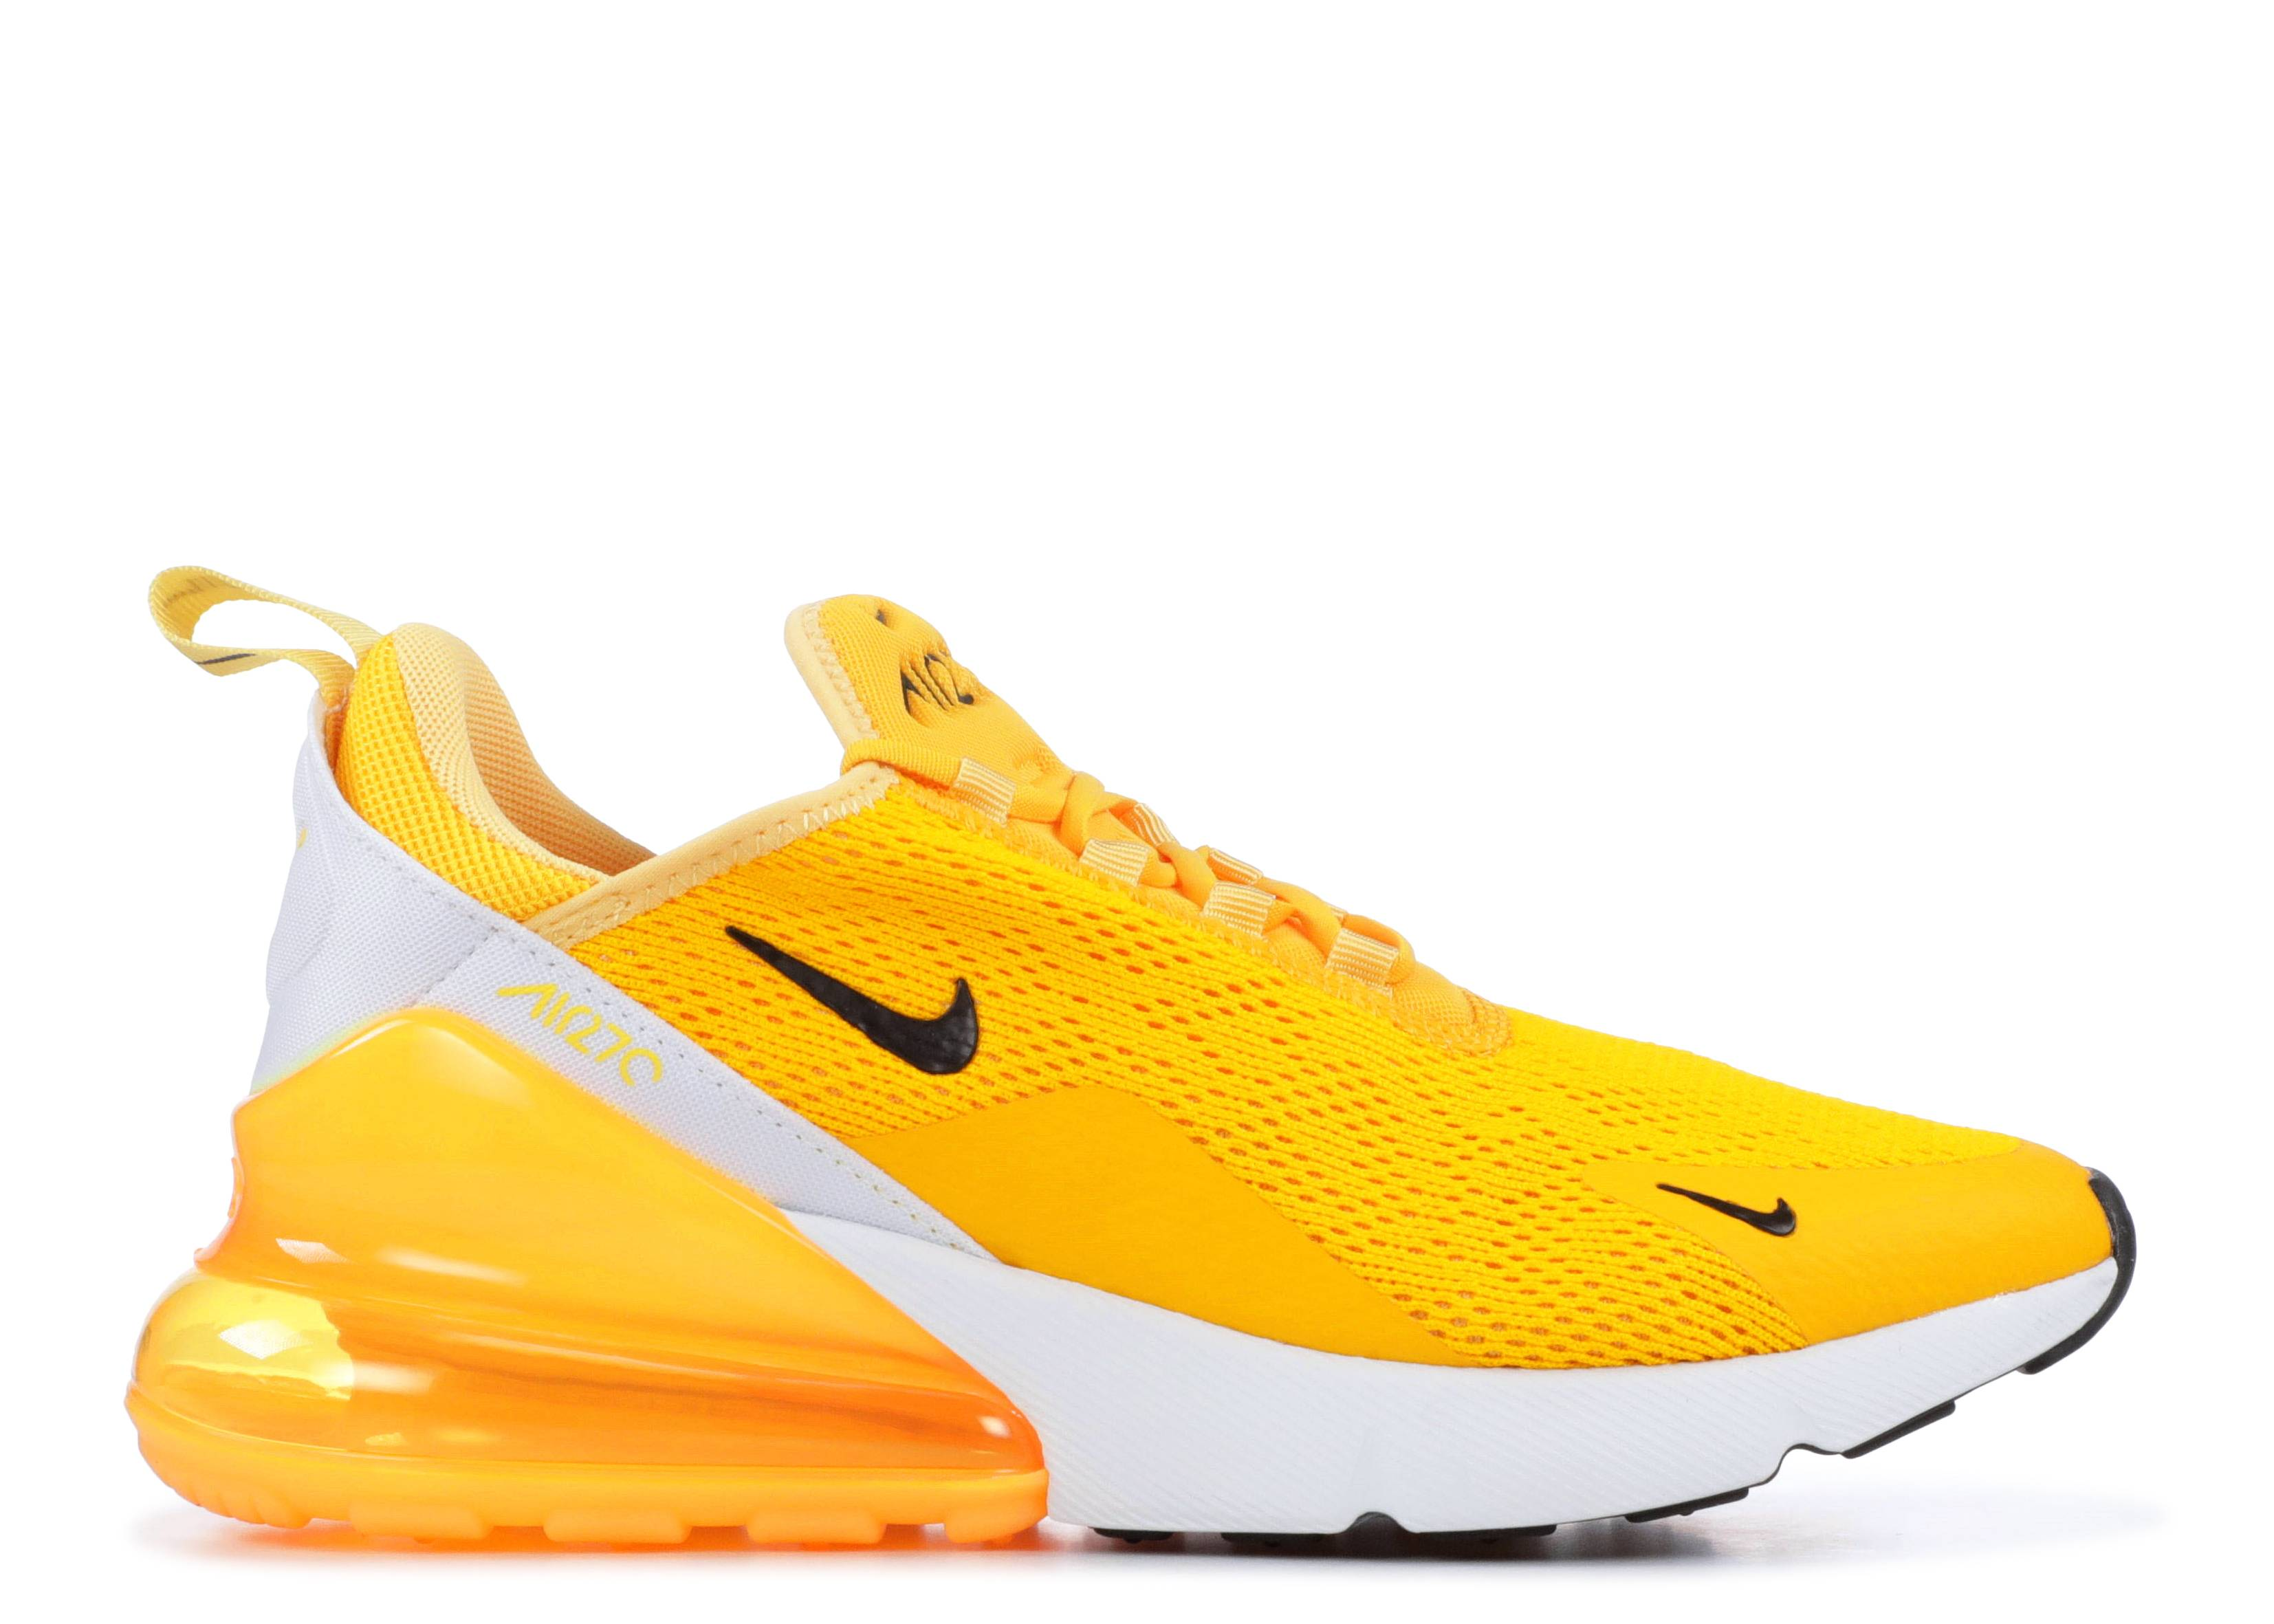 check out 8a108 4c6af Wmns Air Max 270